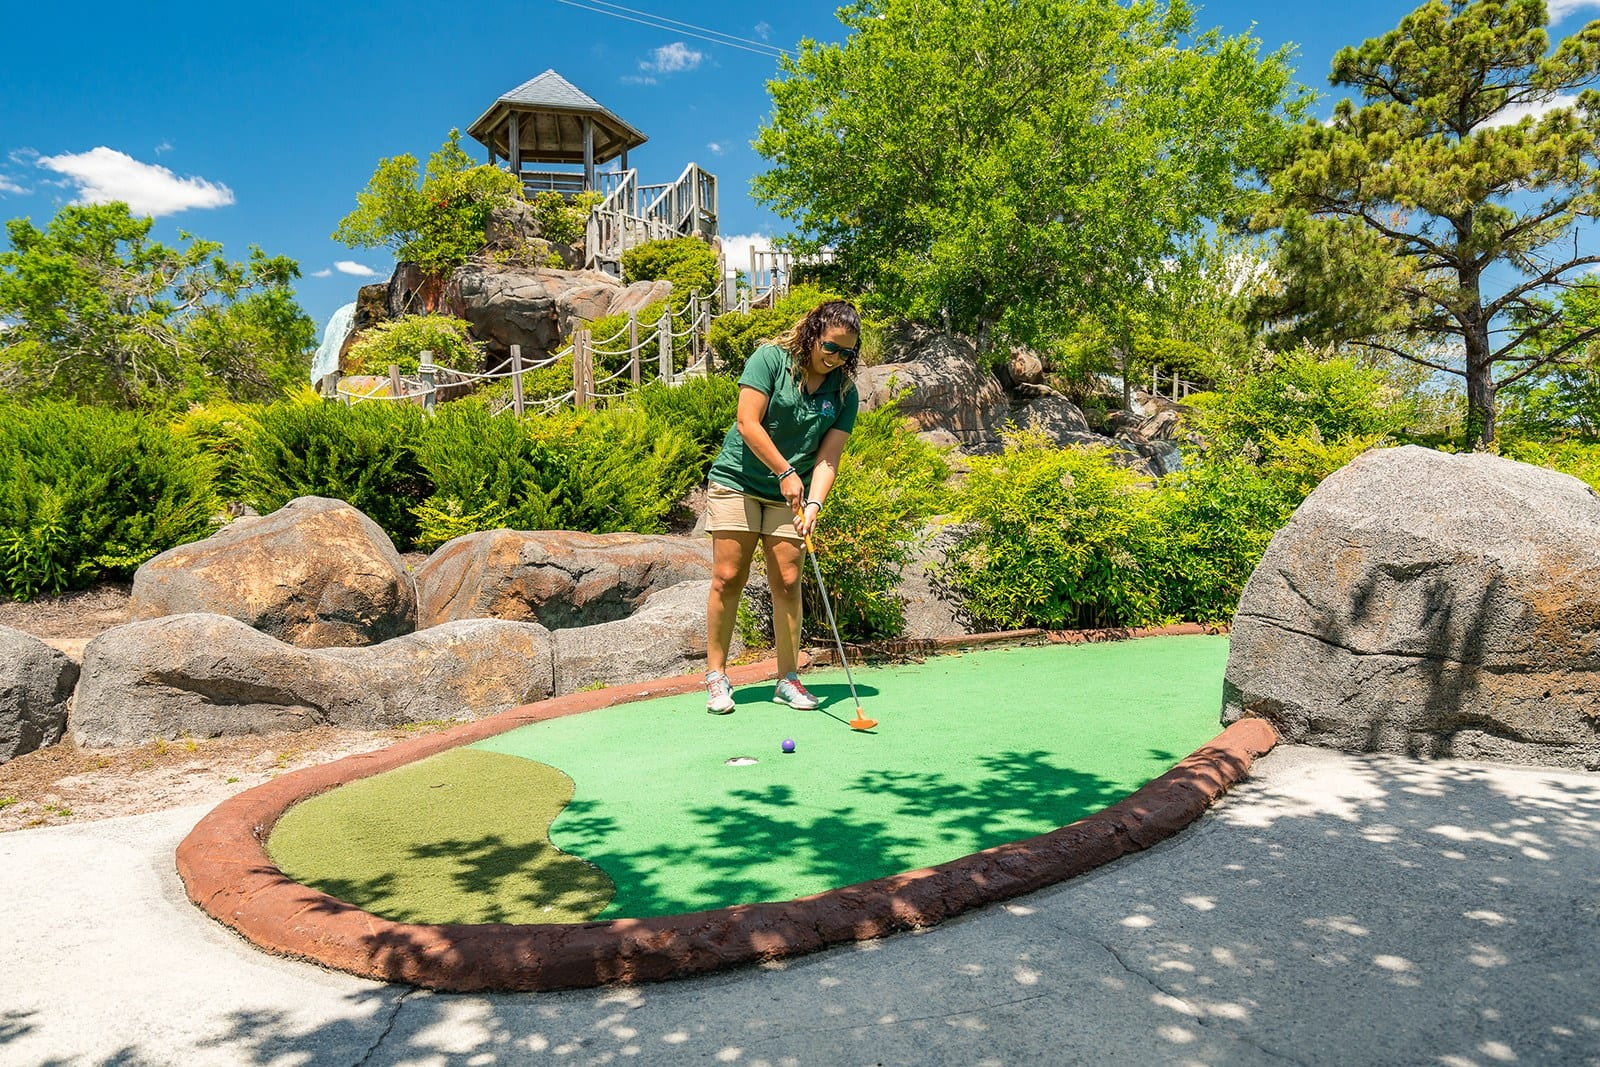 Outdoor family fun on the crystal coast, mini-golf